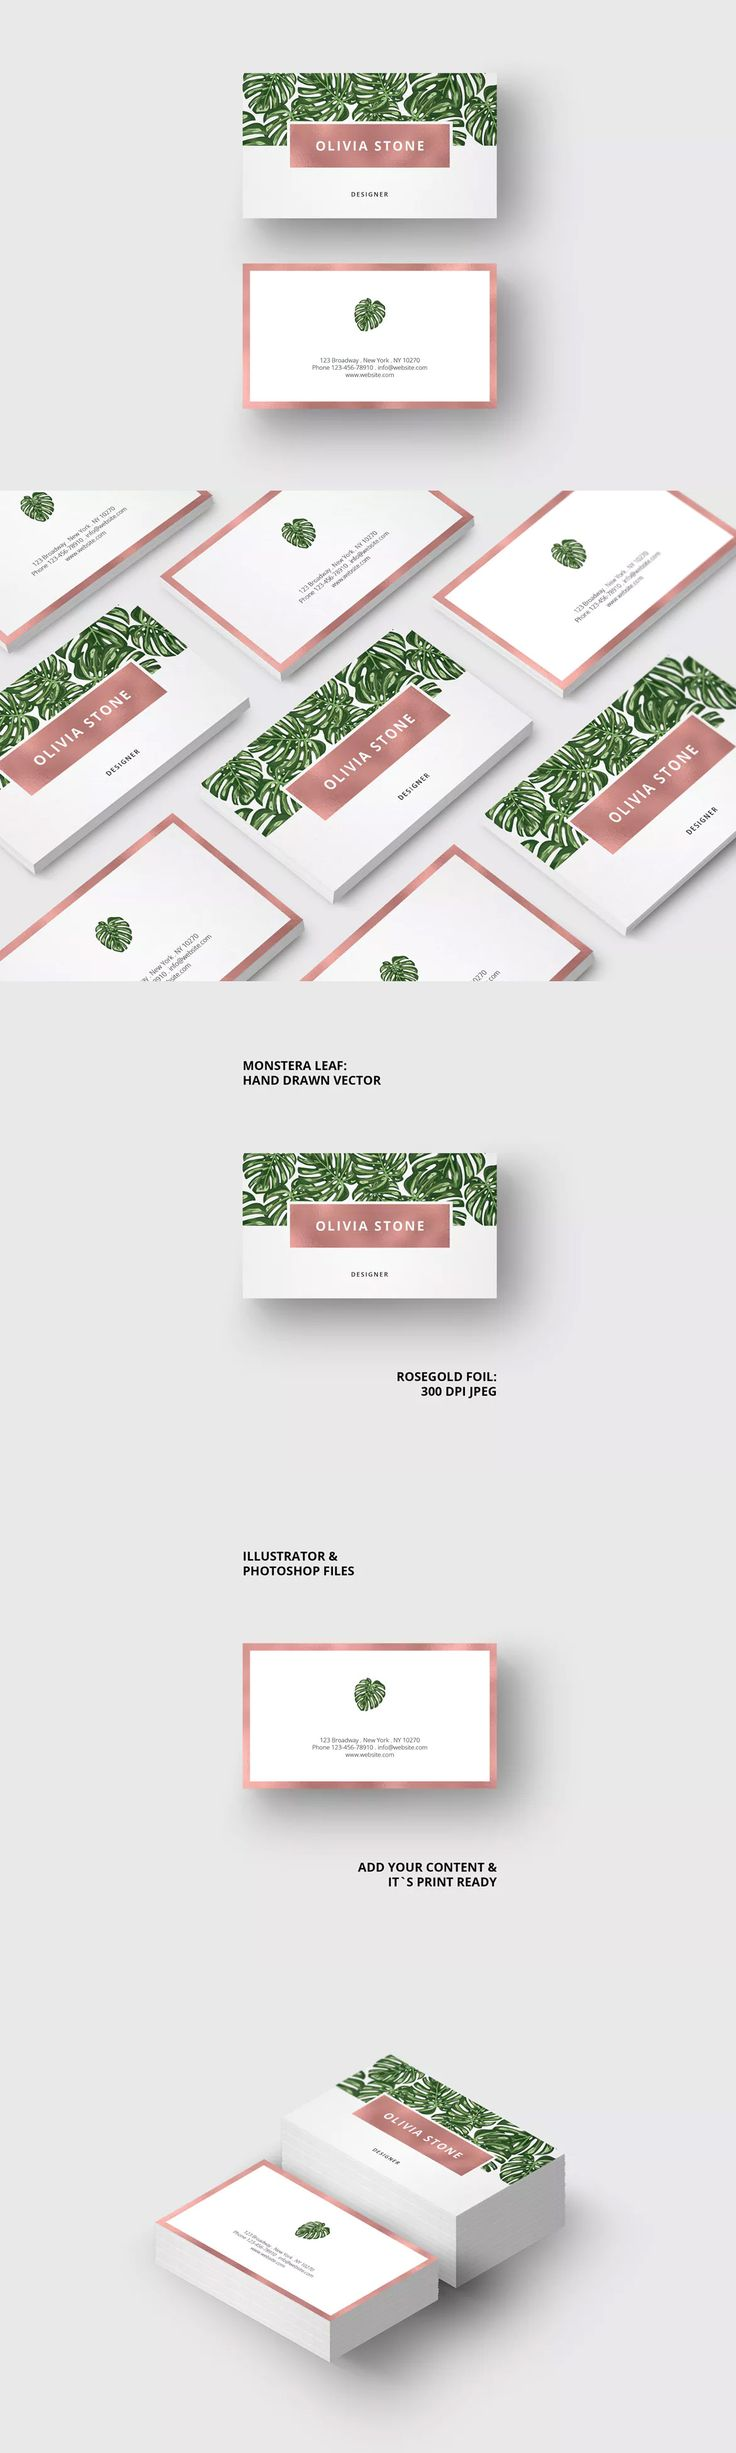 137 best Business Card Template images on Pinterest | Business card ...